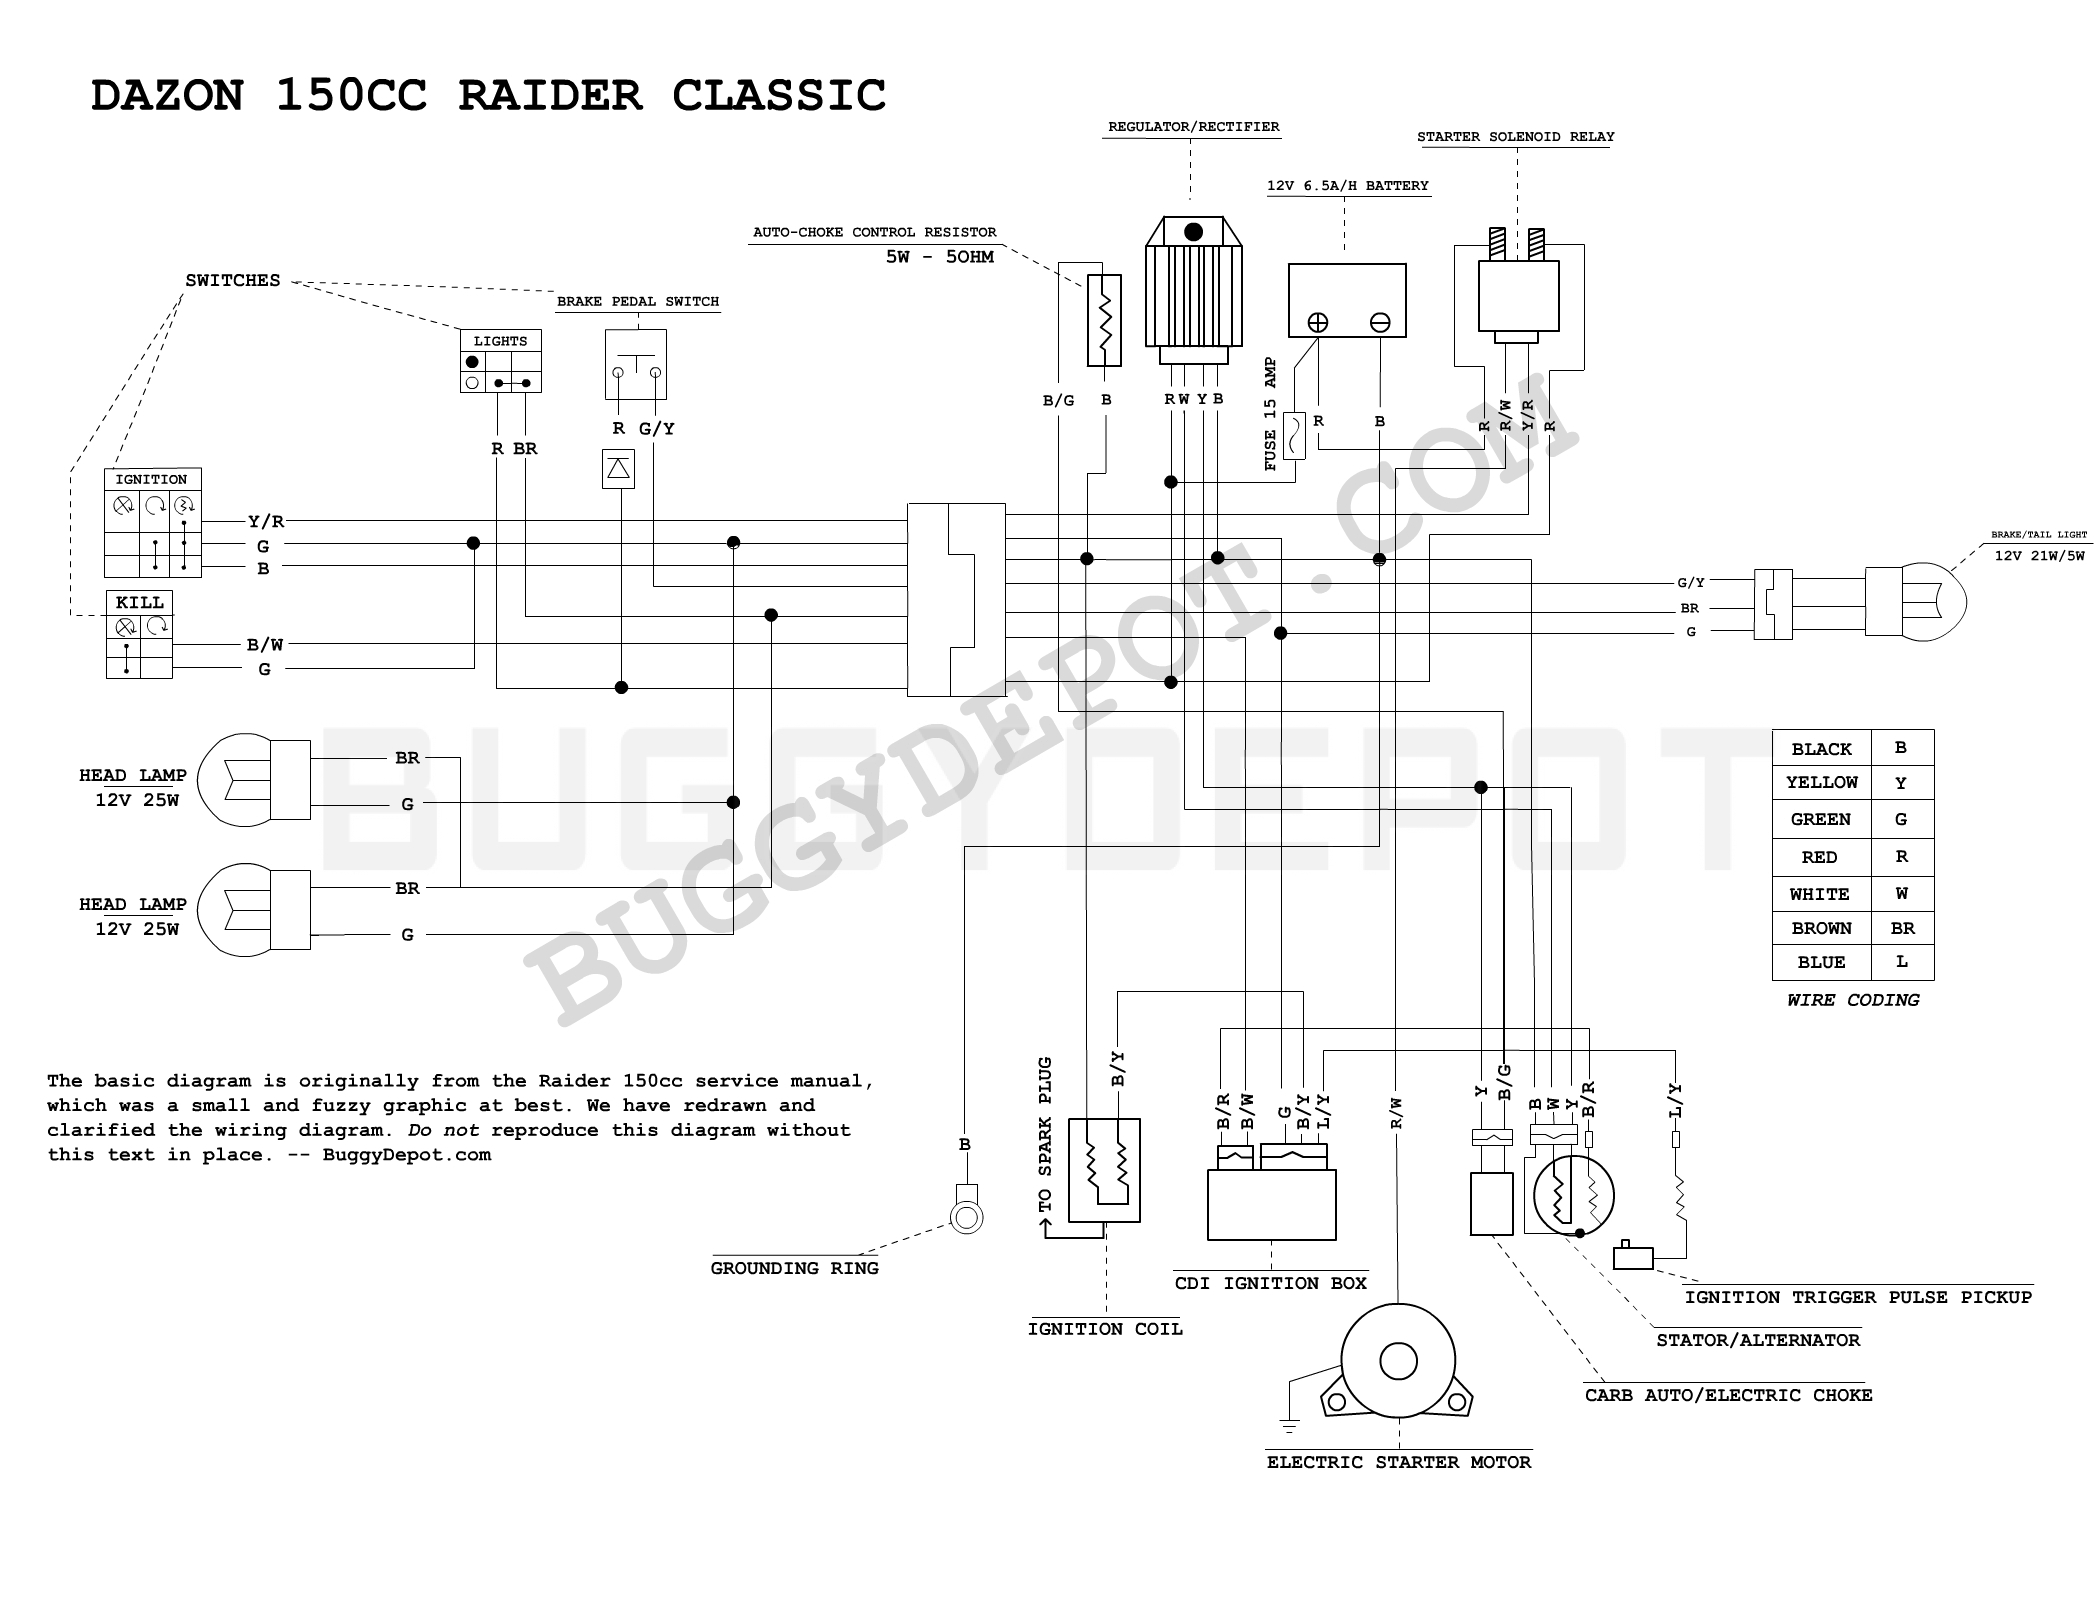 article_33_1278205207 dazon raider classic wiring diagram buggy depot technical center 150cc engine wiring diagram at aneh.co